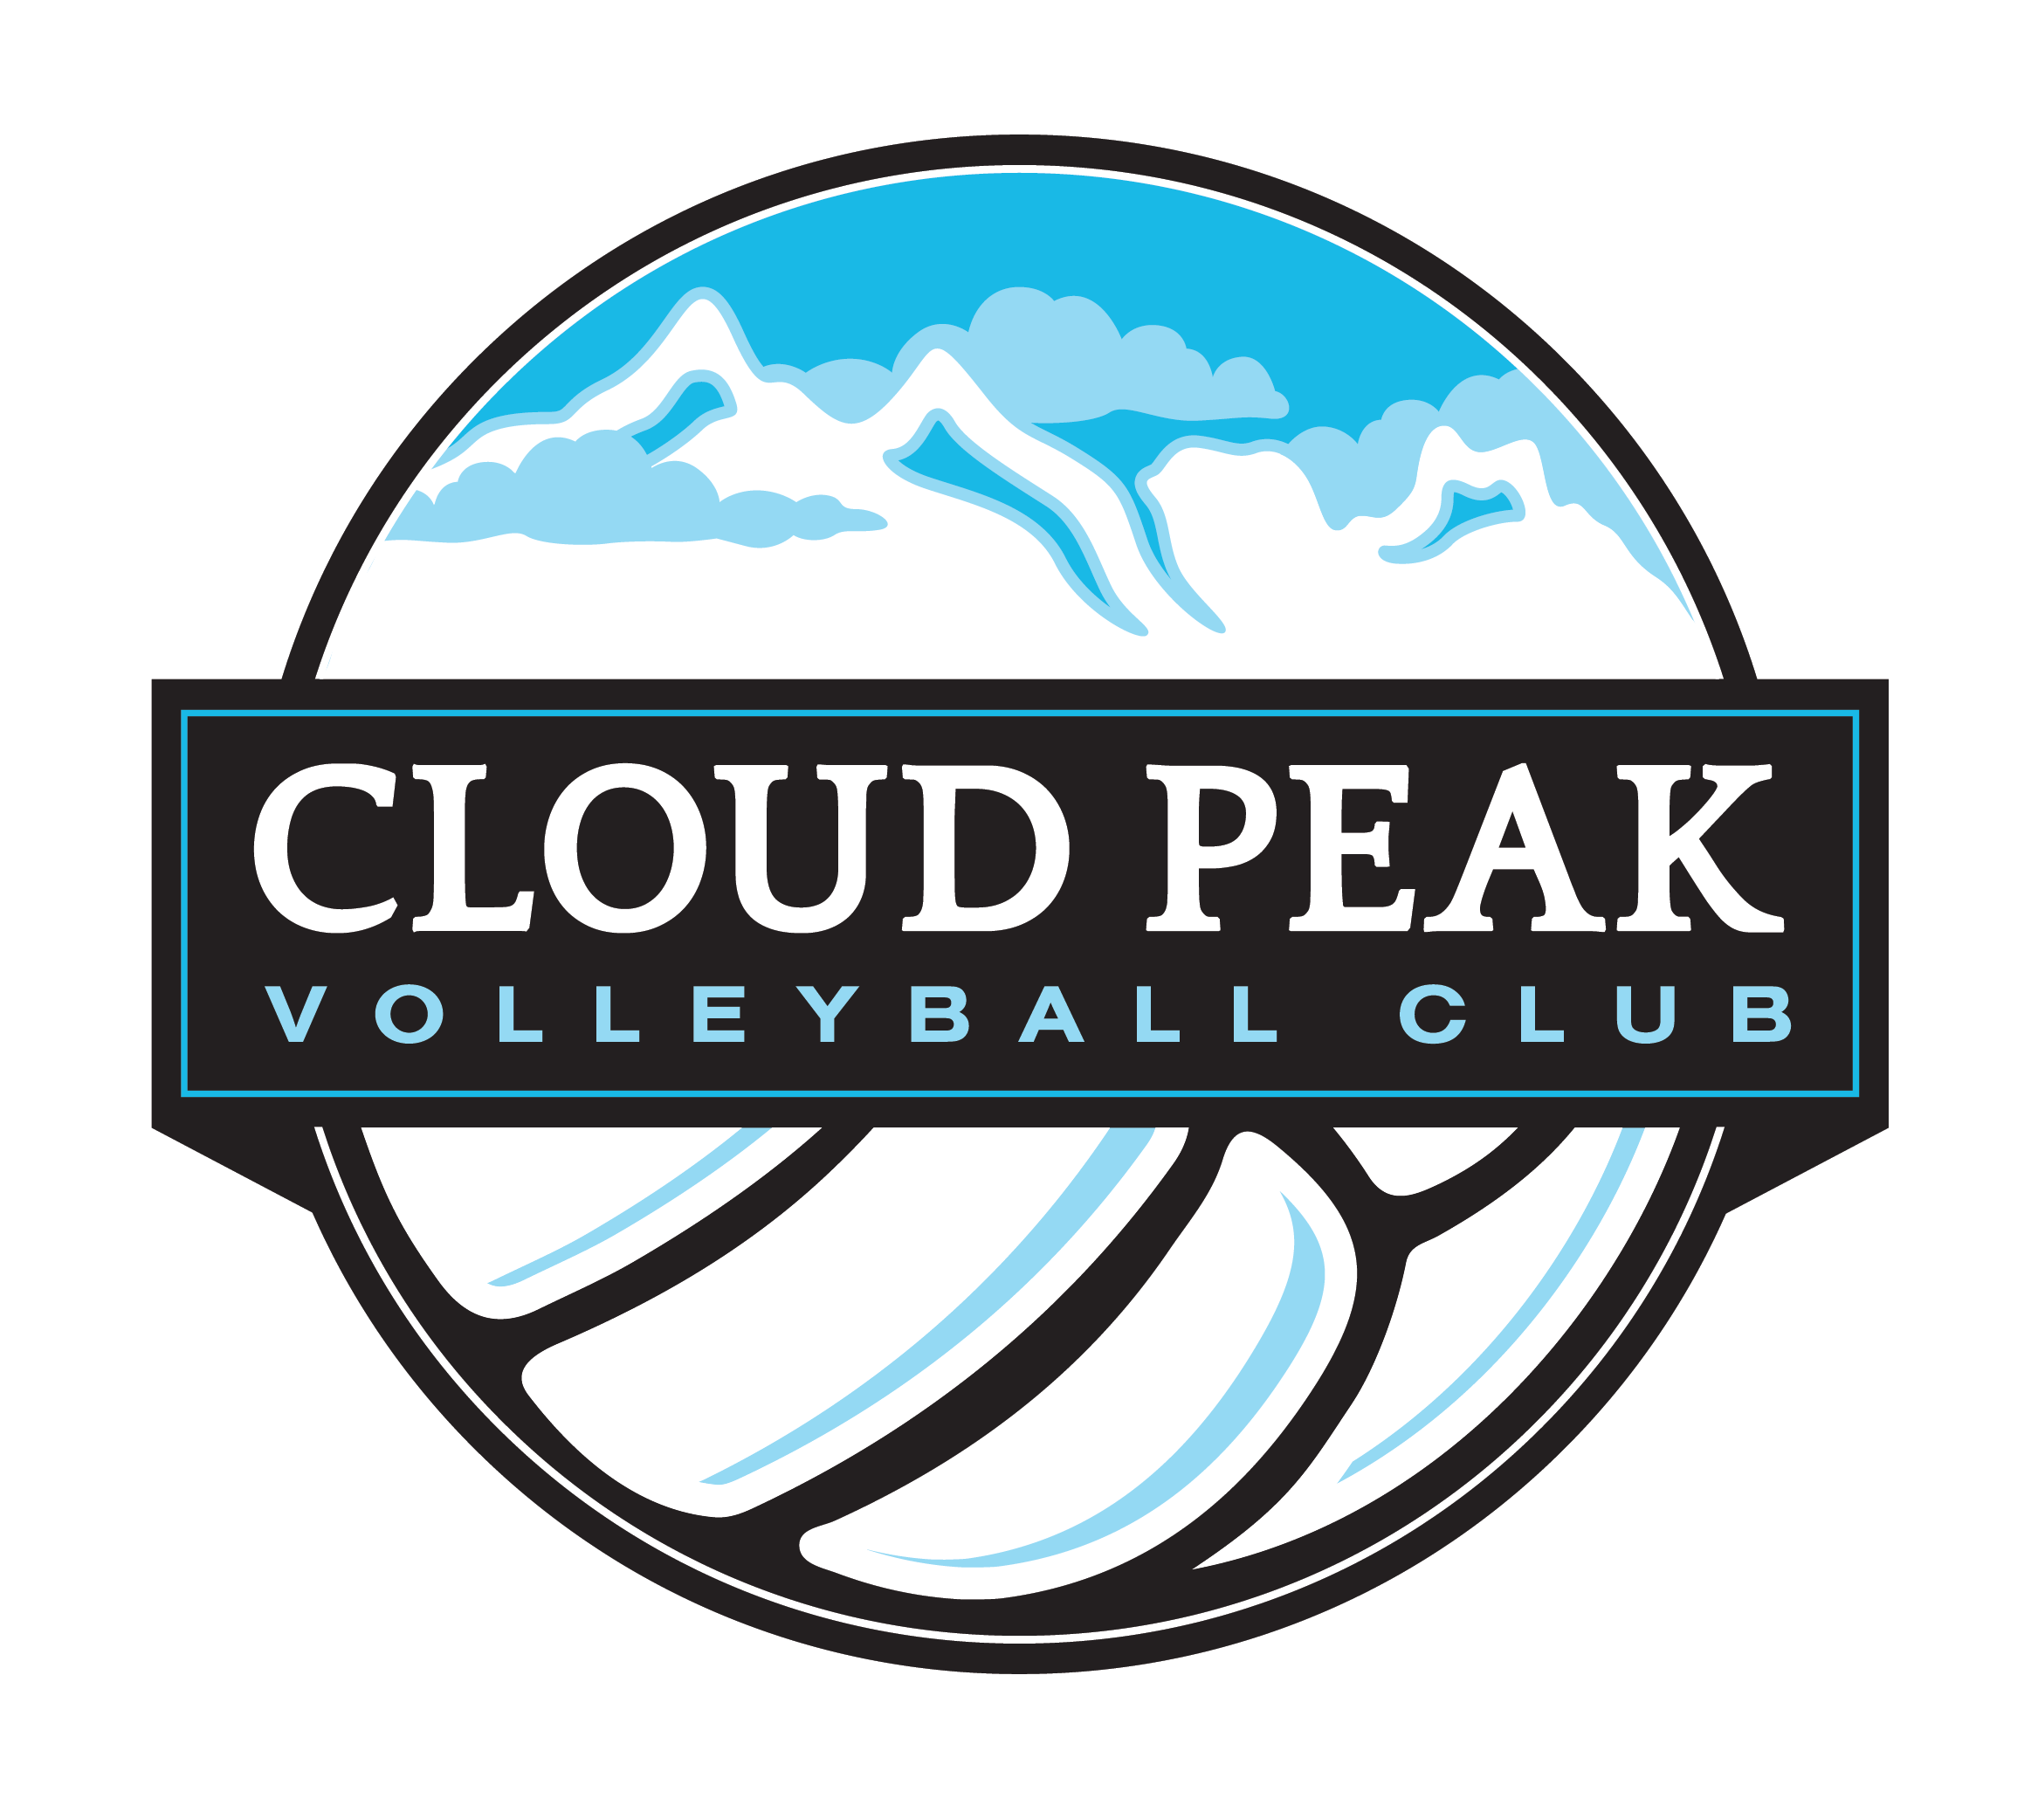 Cloud Peak Volleyball